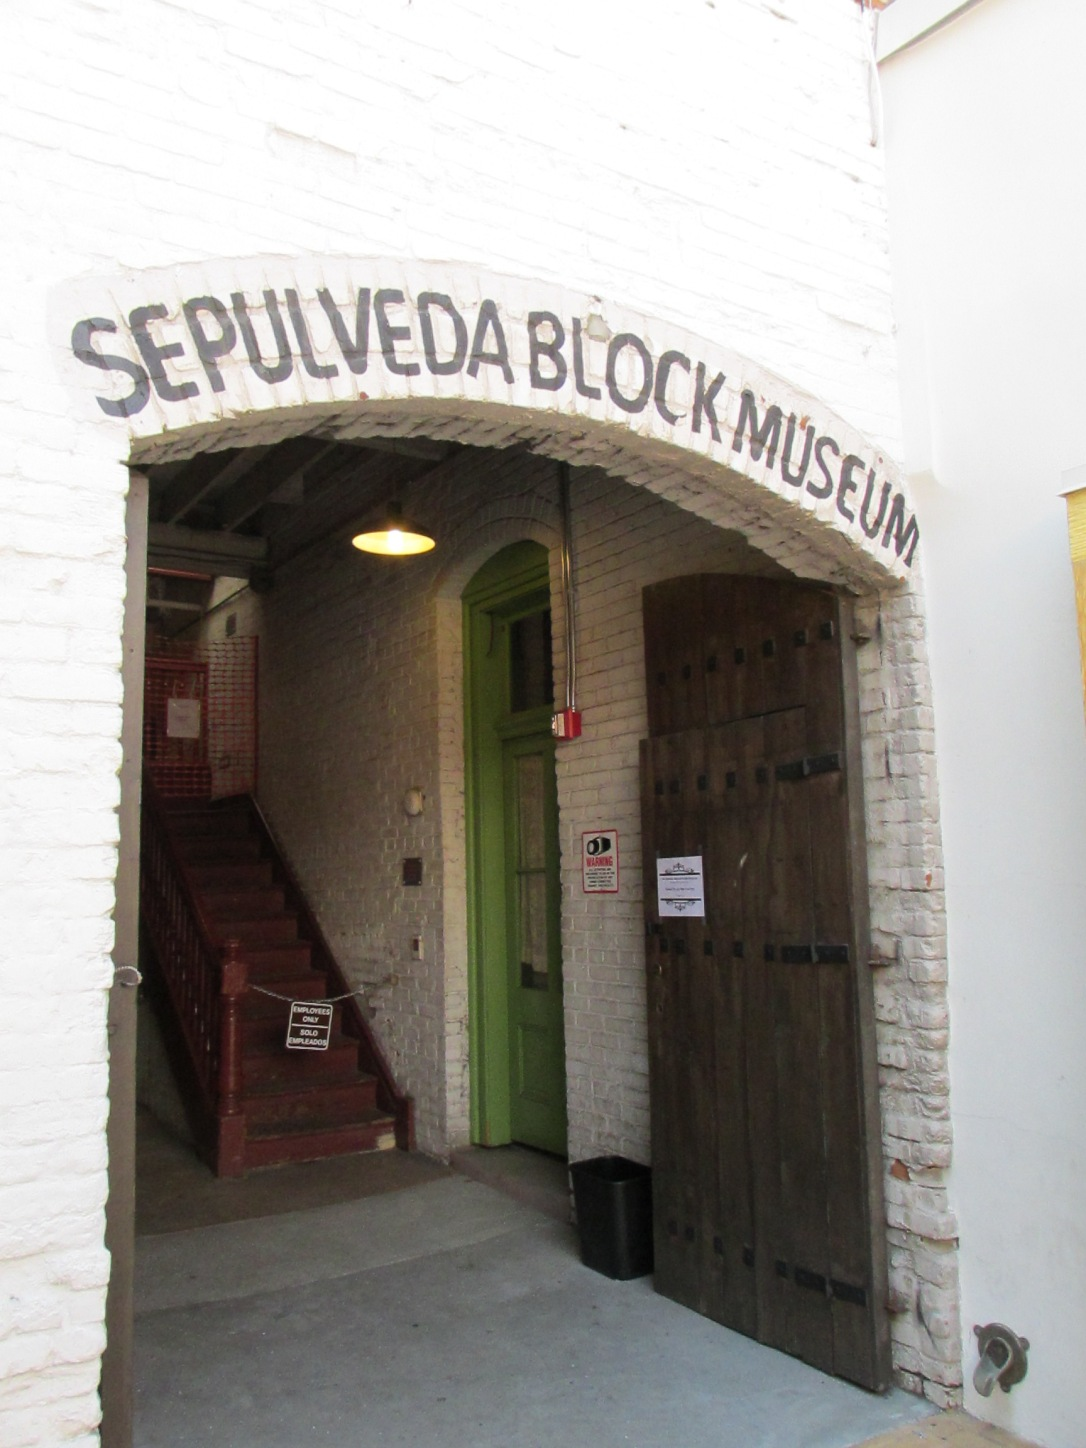 The Sepulveda House.  One of the notable historic buidings of Olvera Street. http://en.wikipedia.org/wiki/El_Pueblo_de_Los_%C3%81ngeles_Historical_Monument#Sepulveda_House